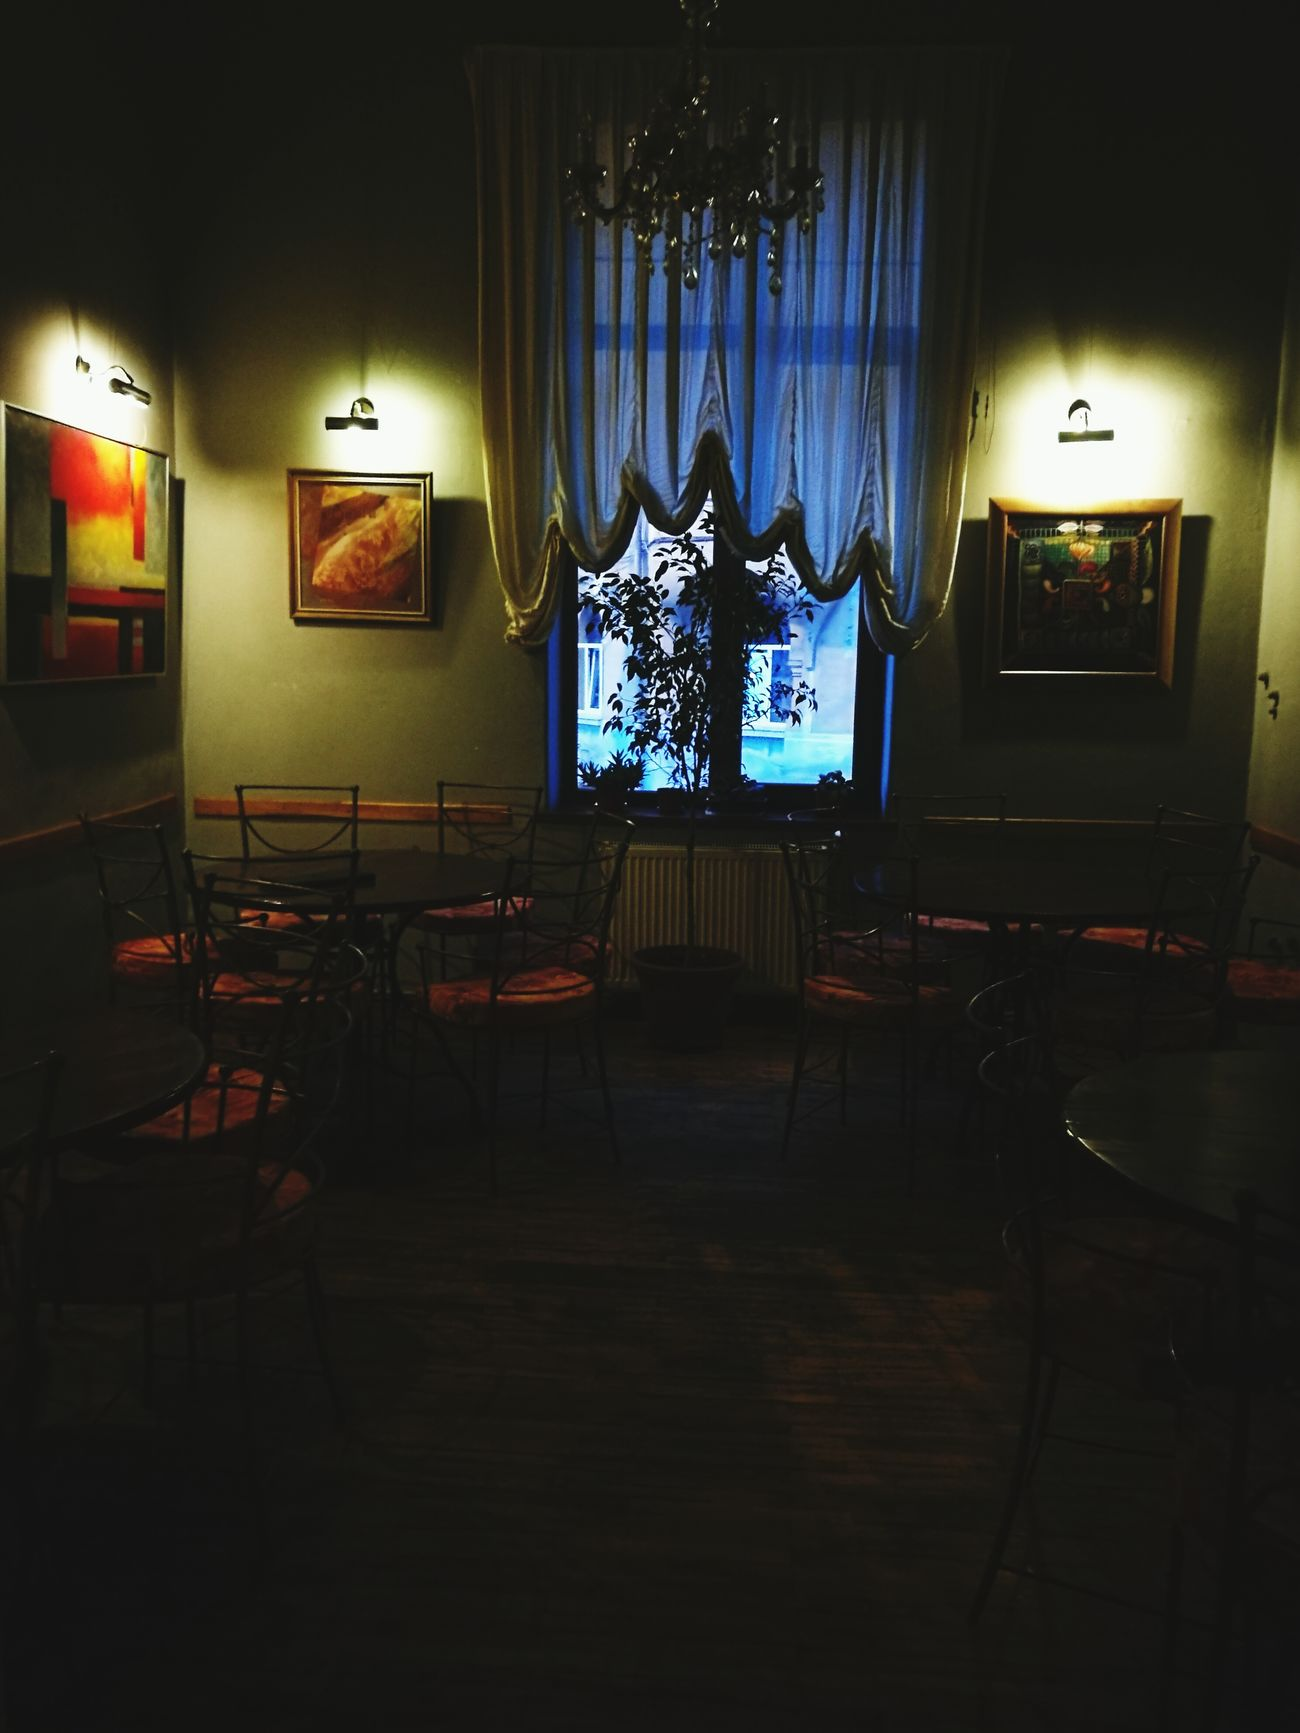 Vintage Restaurant Vintage Pub Old Old Building  OLD INTERIOR OF HOUSE Old City Jazz Lamps Chairs Tables Windows Green Color Green Wall Urban Coffee Old Bucharest Relaxing